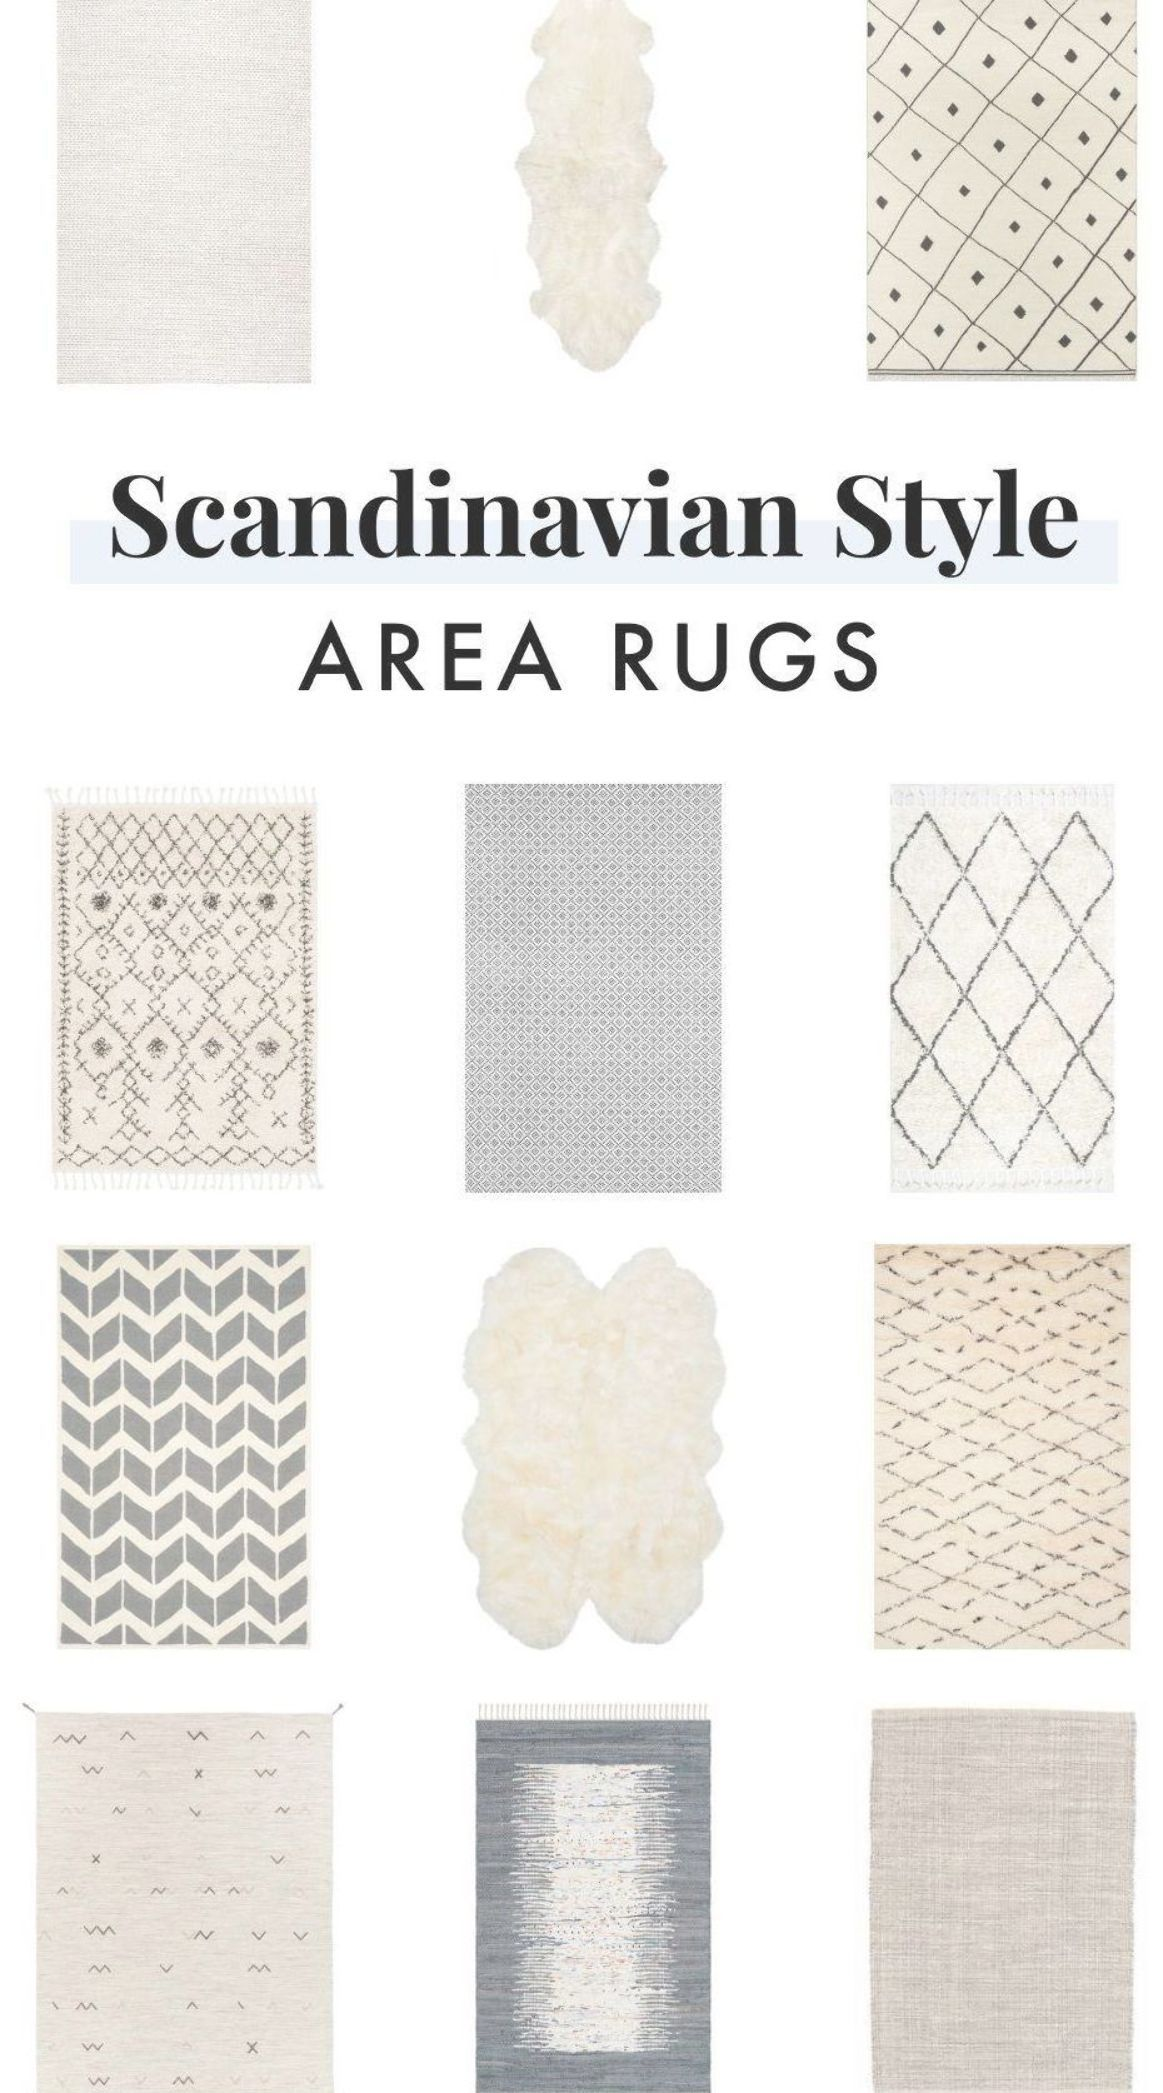 12 Scandinavian Style Area Rugs These Scandinavian Rugs Will Create The Perfect Scandi Decor Atmosp Scandinavian Rug Scandinavian Home Interiors Scandi Decor